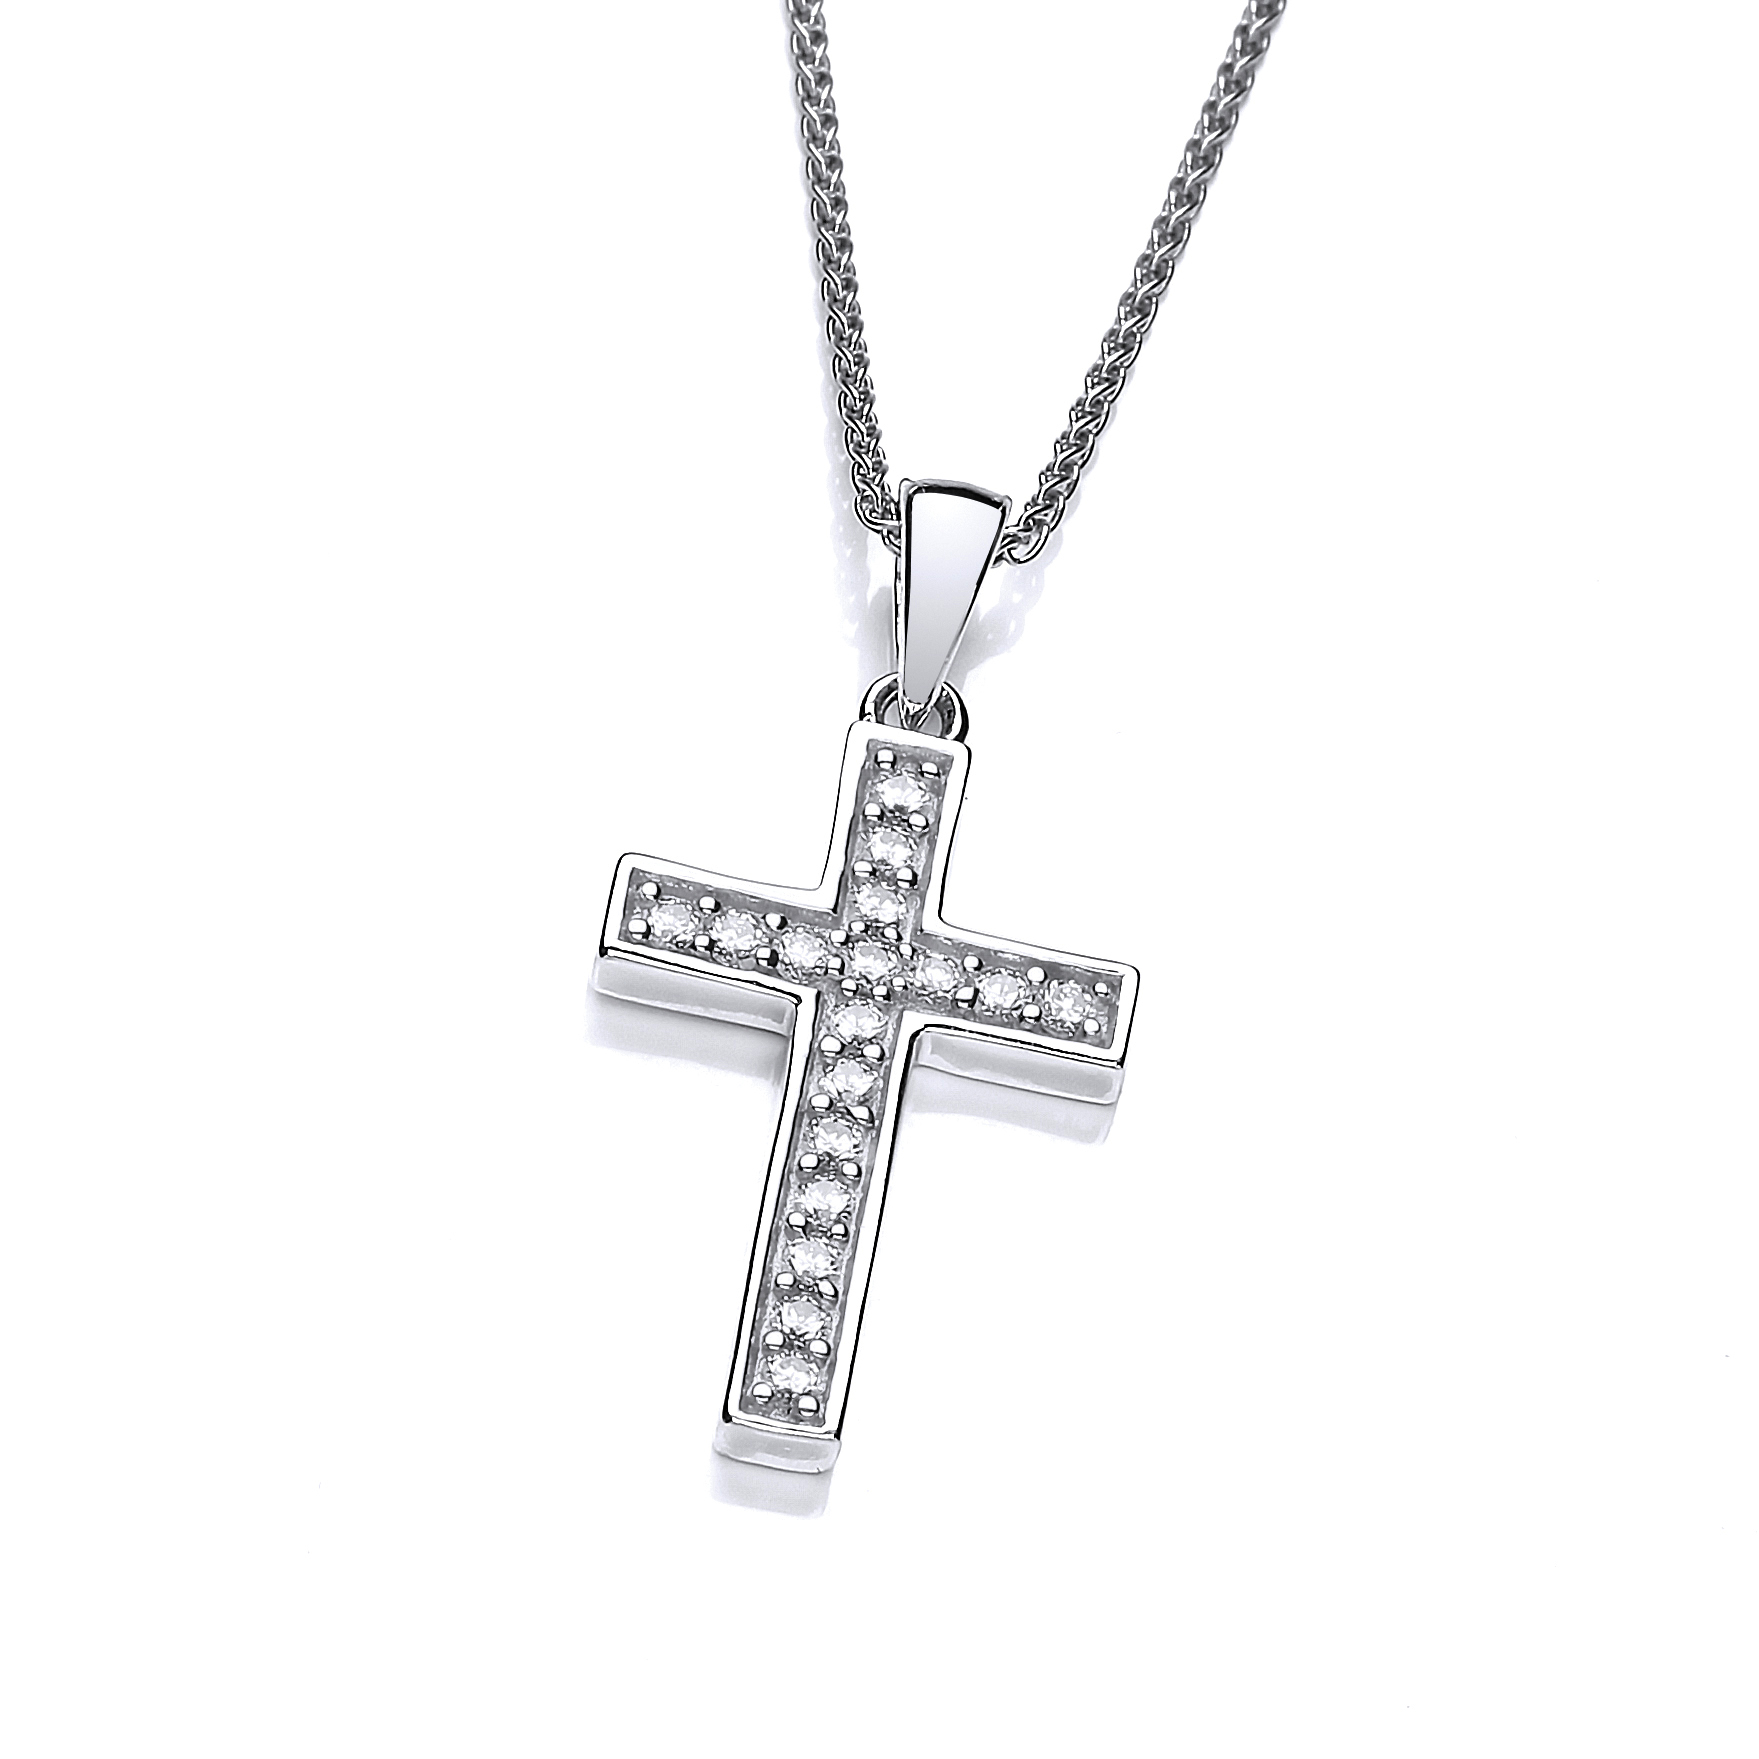 Jewellery - the Perfect Christening and Confirmation Gift